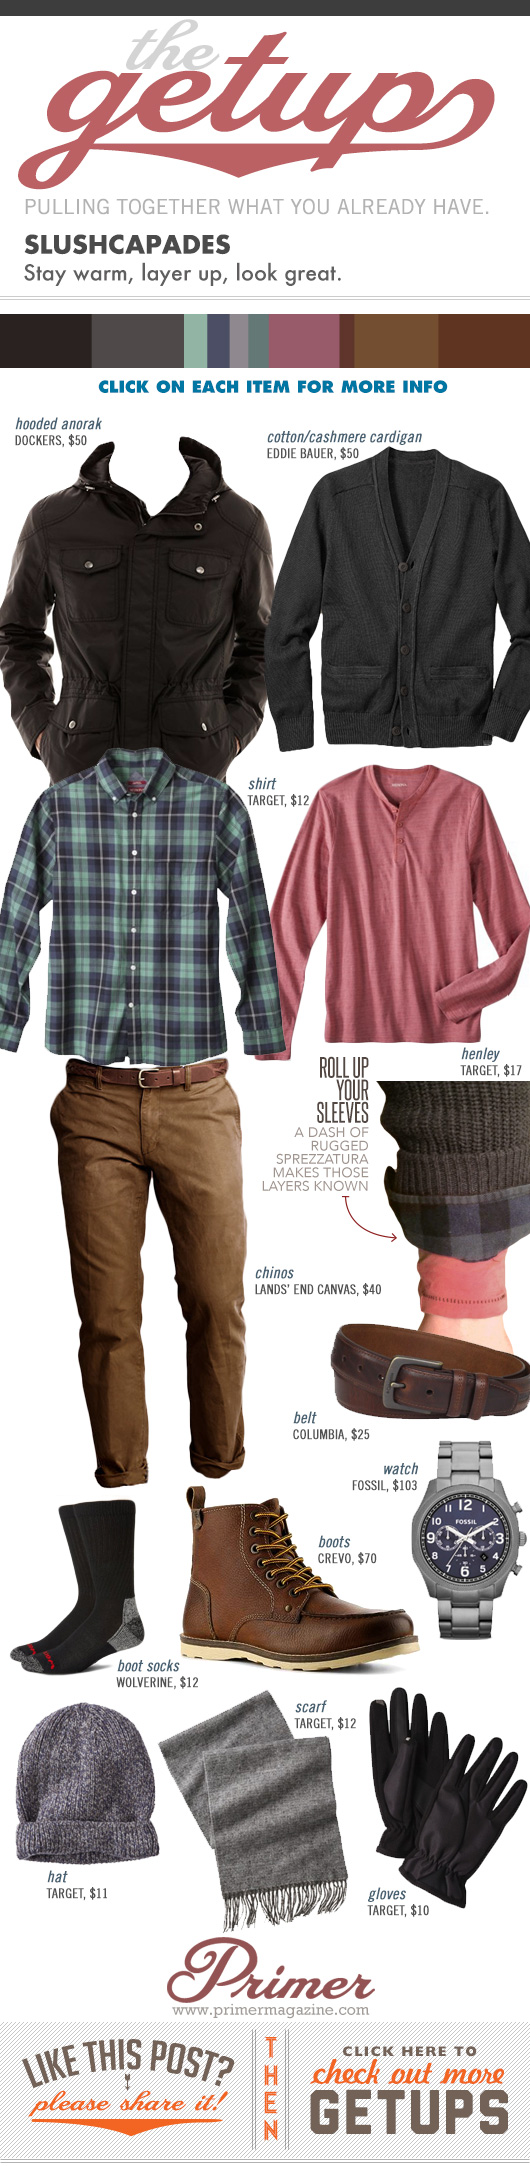 Getup Slushcapades - Winter outfit with jacket, plaid shirt, red henley, brown pants, and boots